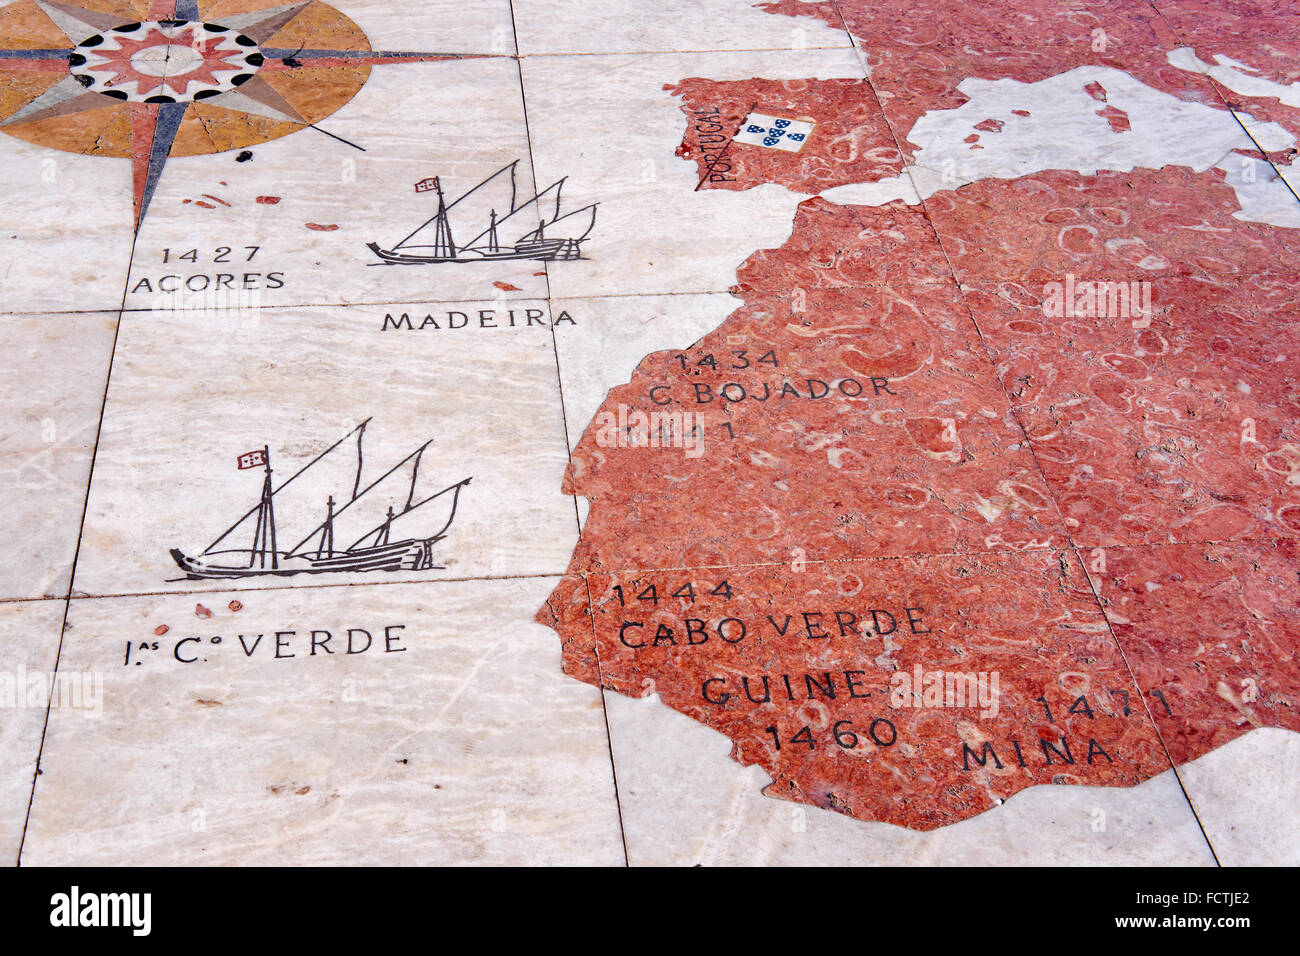 Portugal, Lisbon, Belem, compass pavement, mosaic deptic the navigator's  itinerary, in front of the Monument - Stock Image